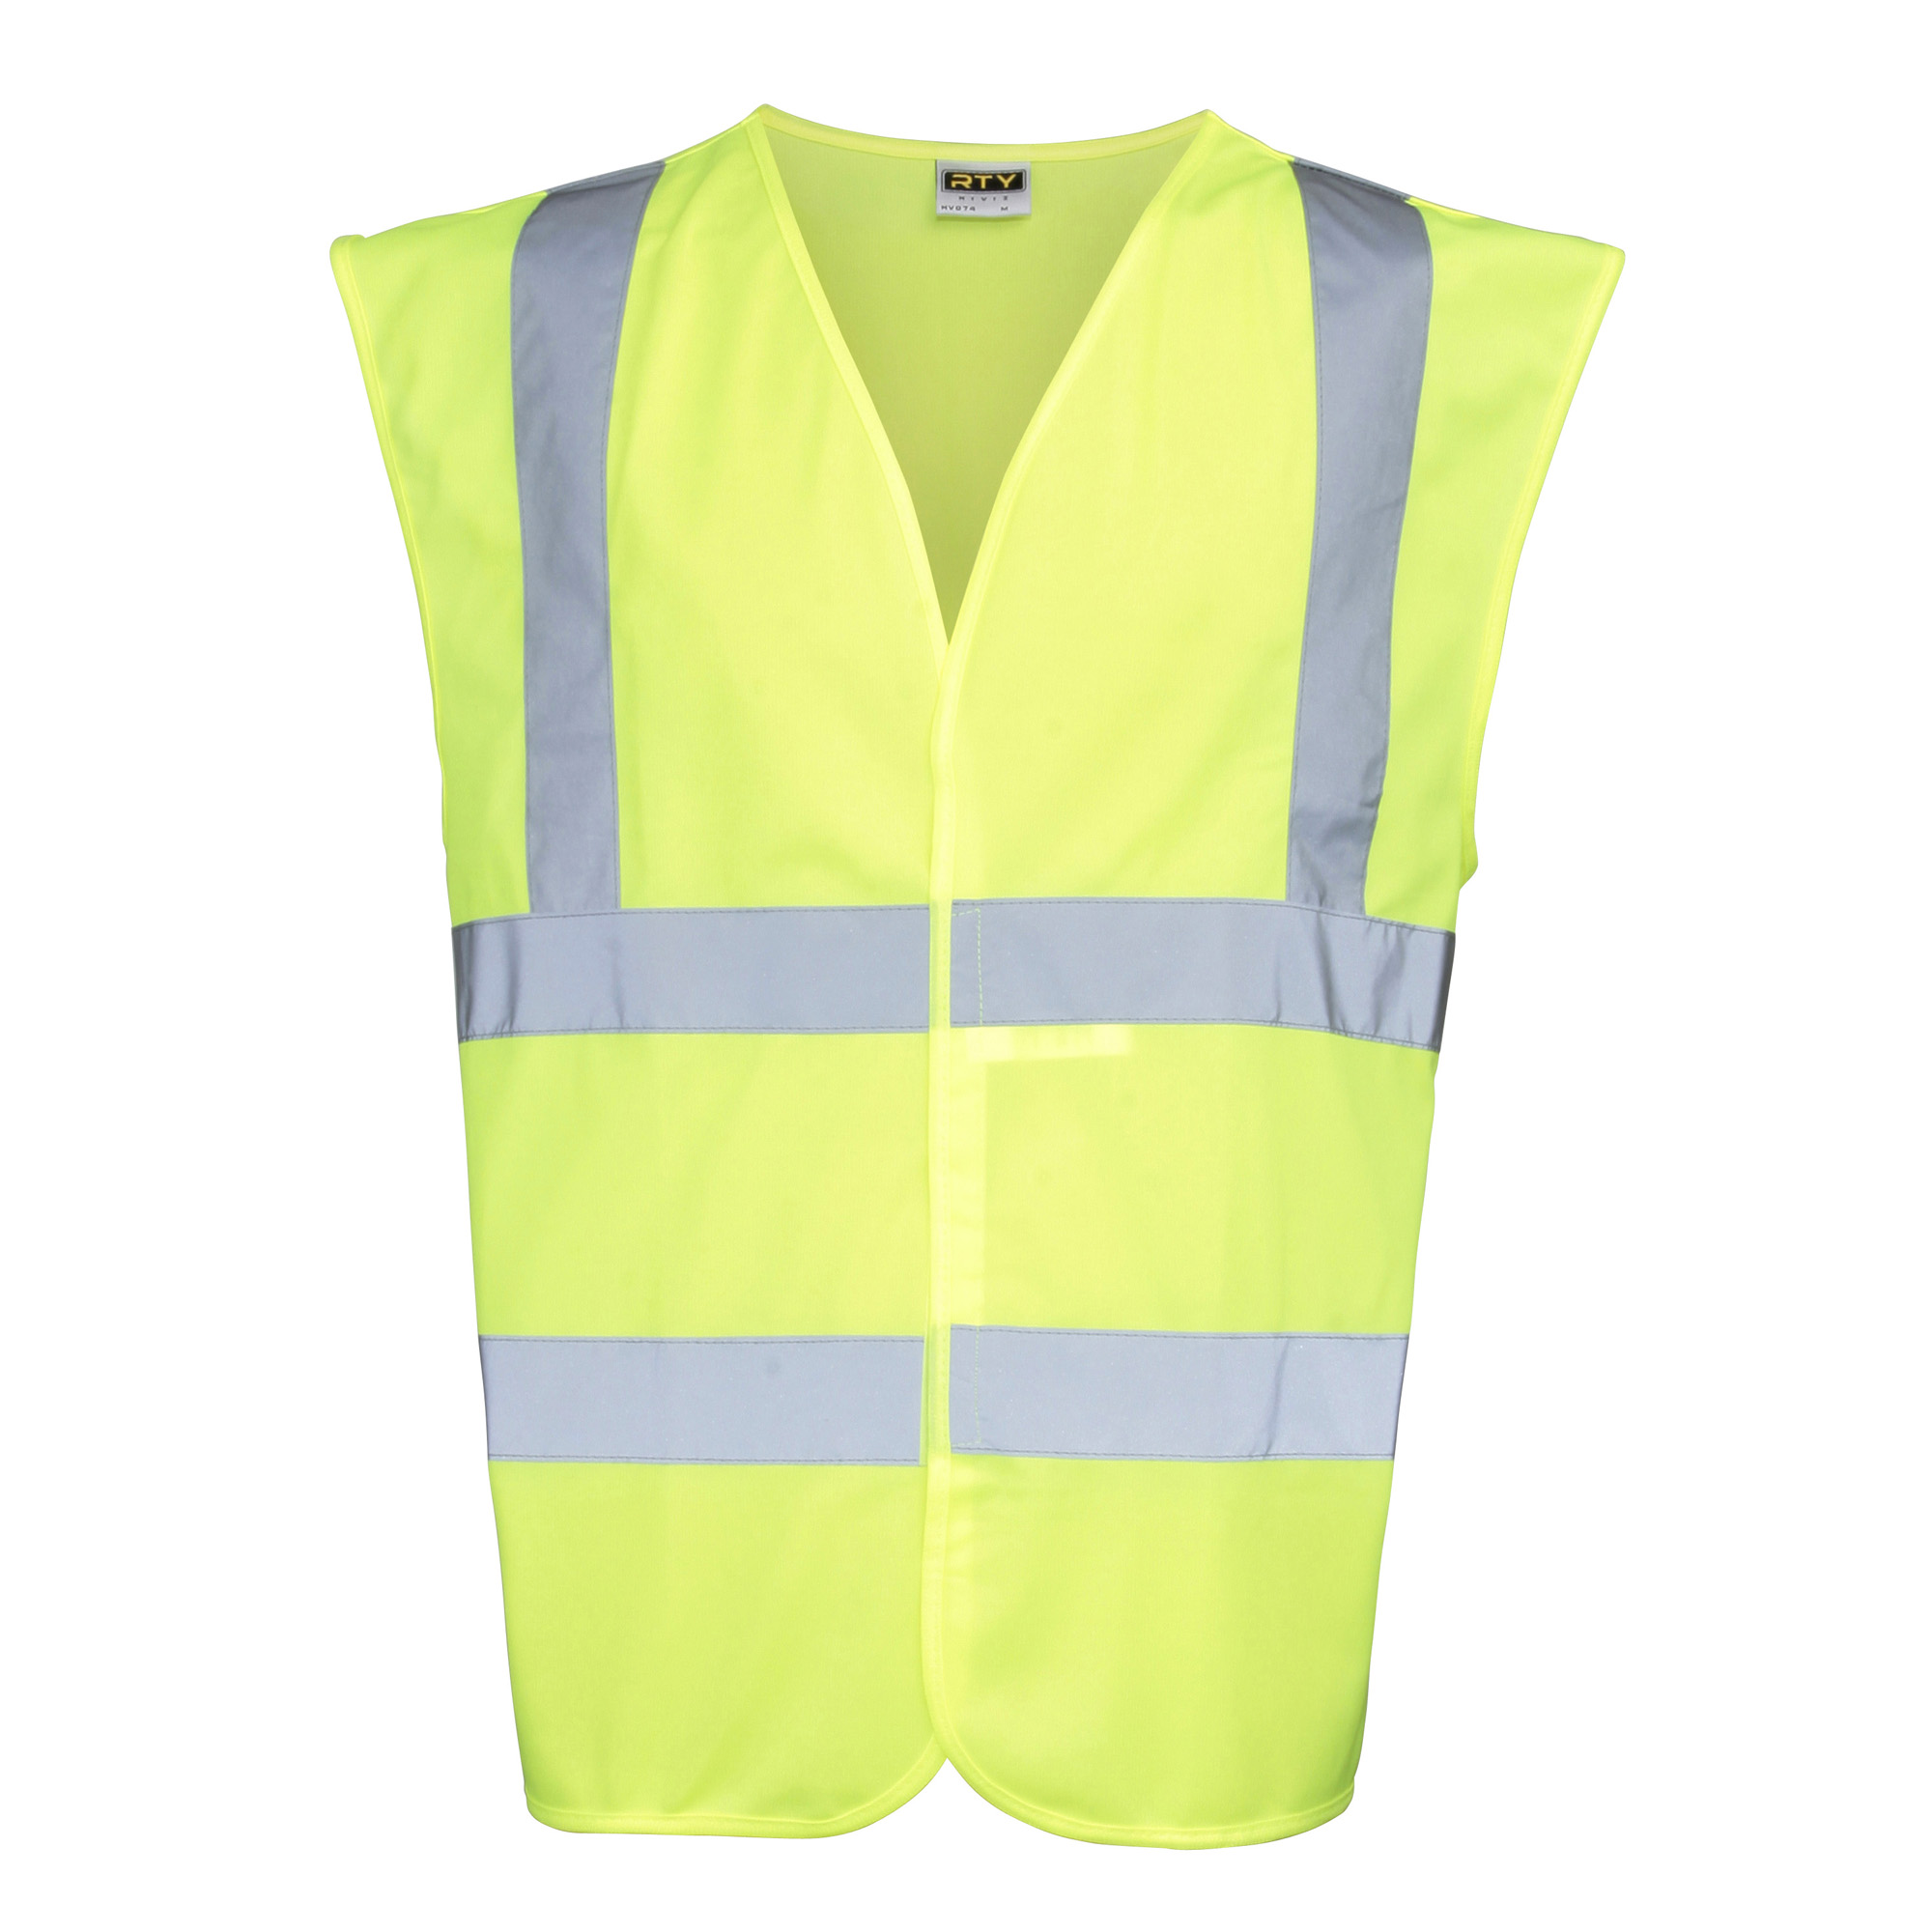 RTY High Visibility Unisex High Vis Sleeveless Waistcoat / Vest (Pack of 2) (XL) (Fluorescent Yellow)